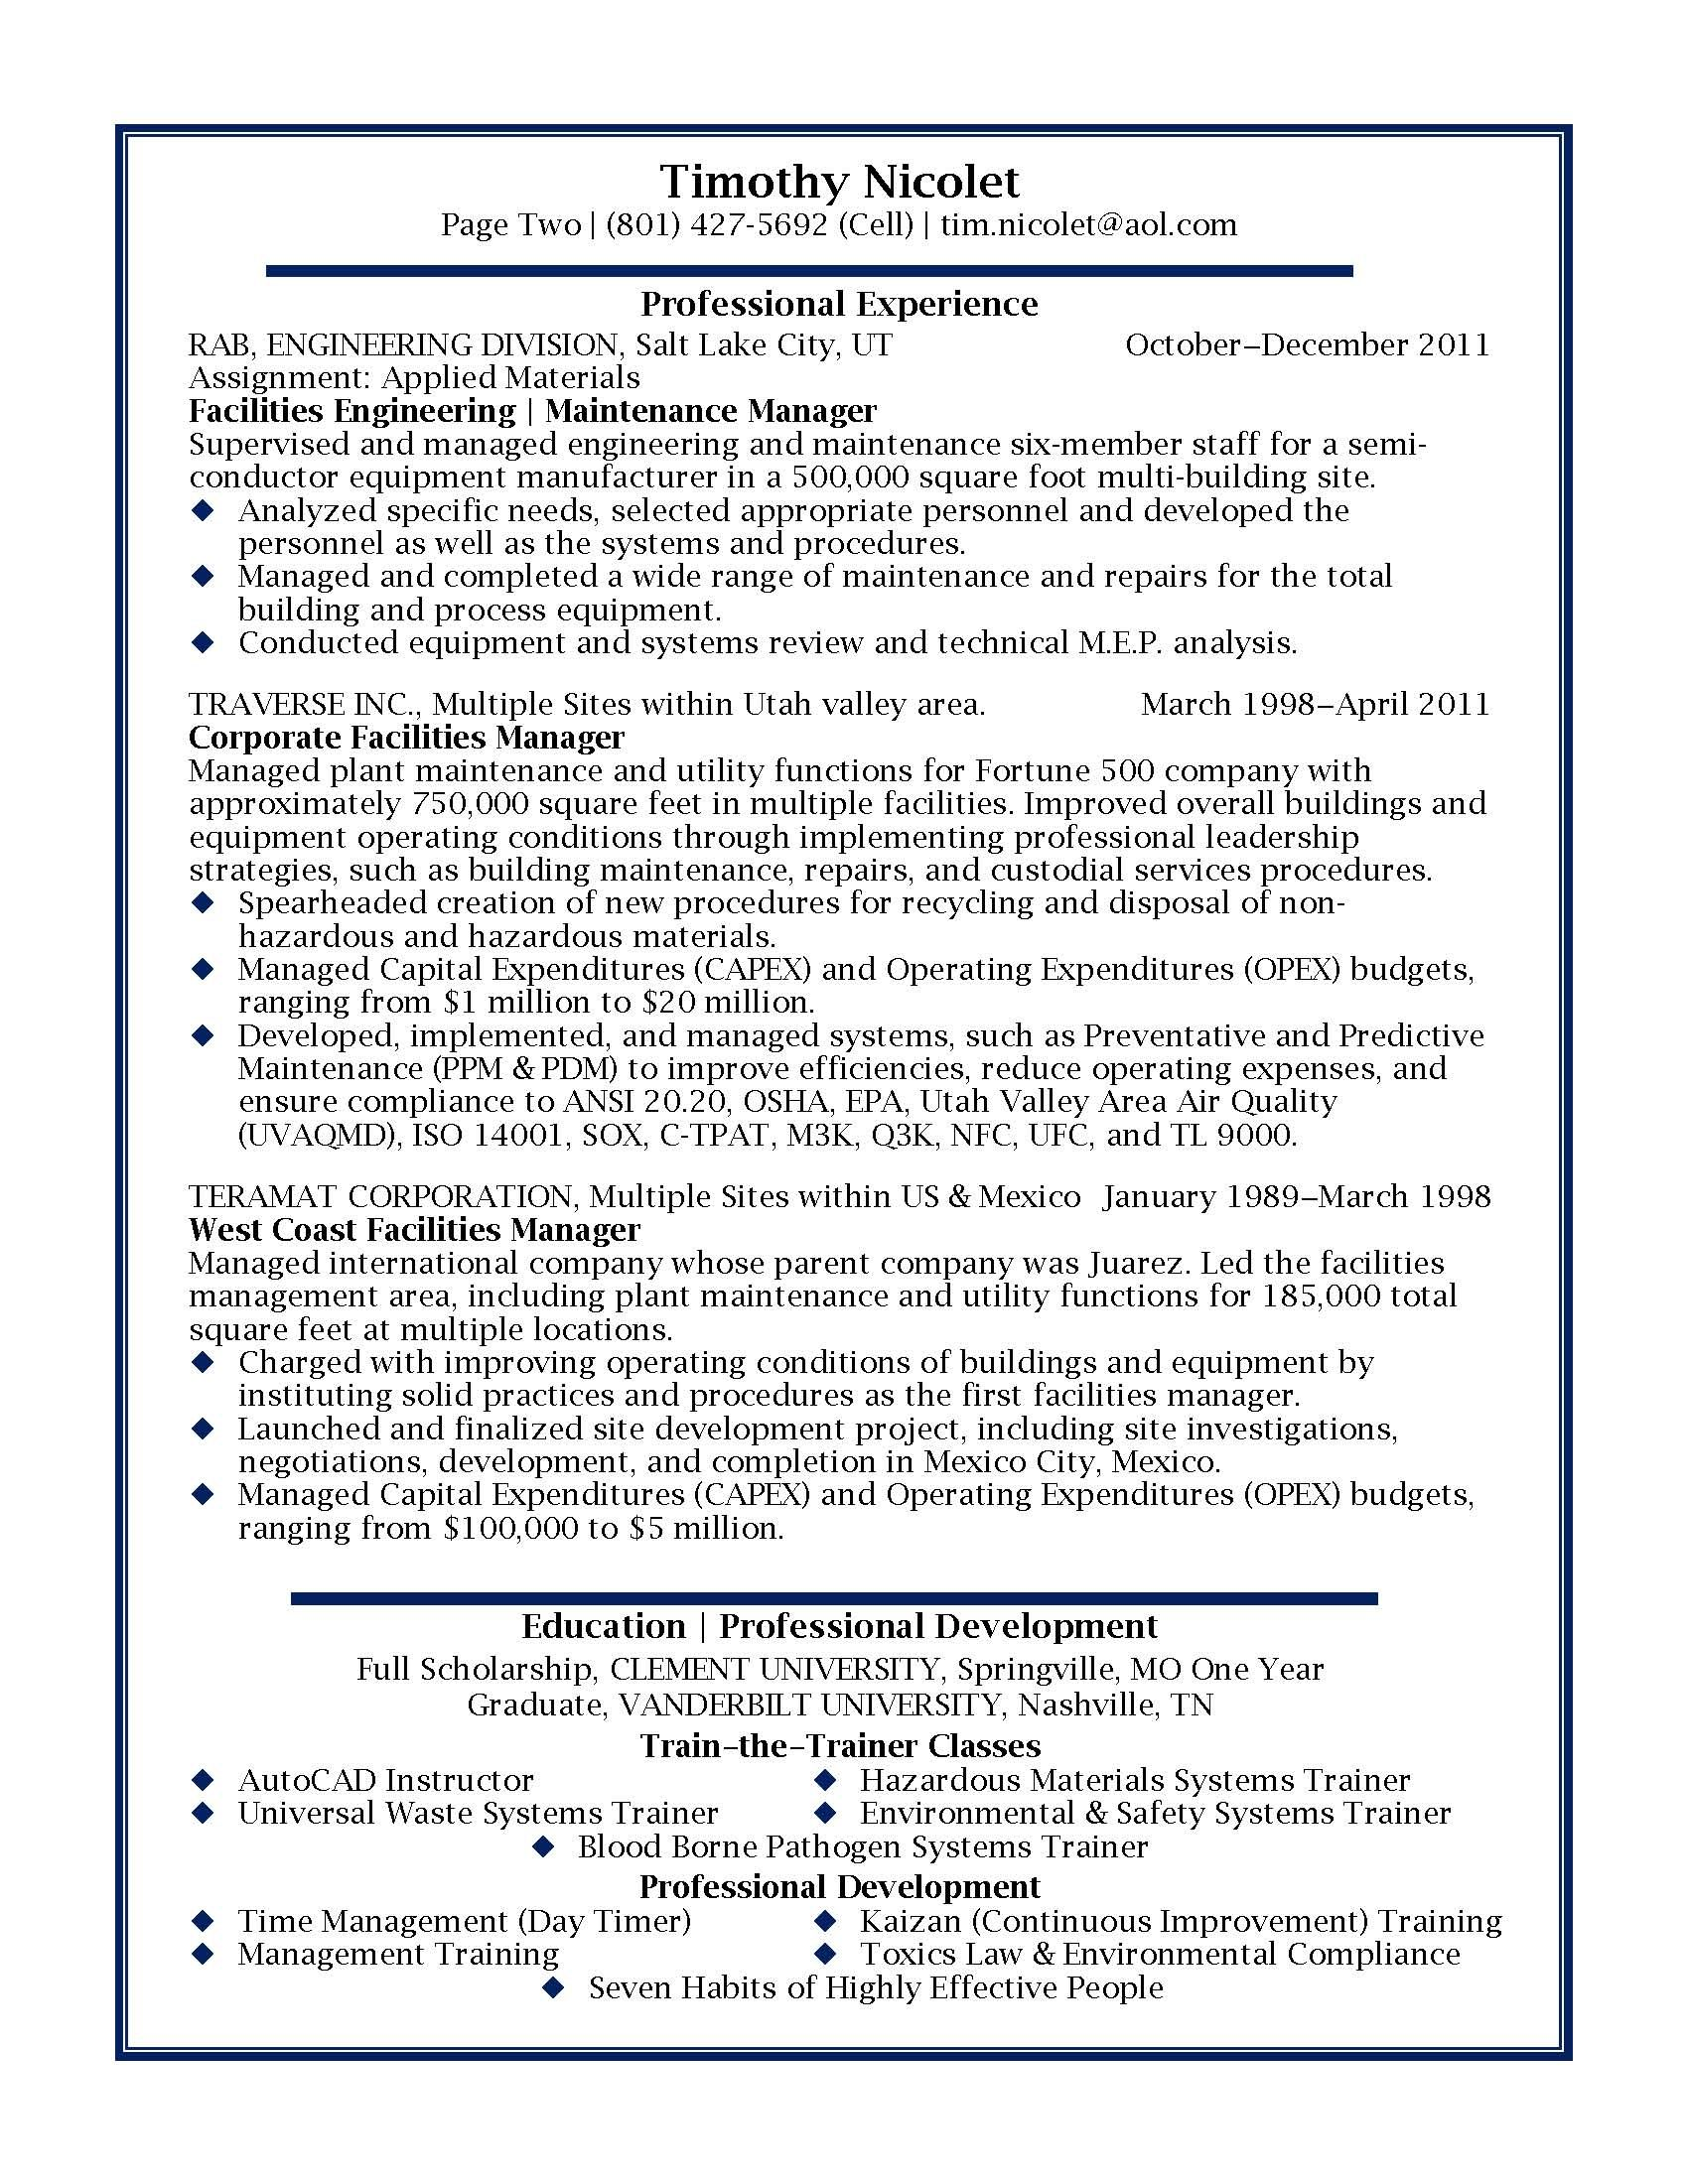 Facilities Manager Professional Resume Sample Design Resumes 2200